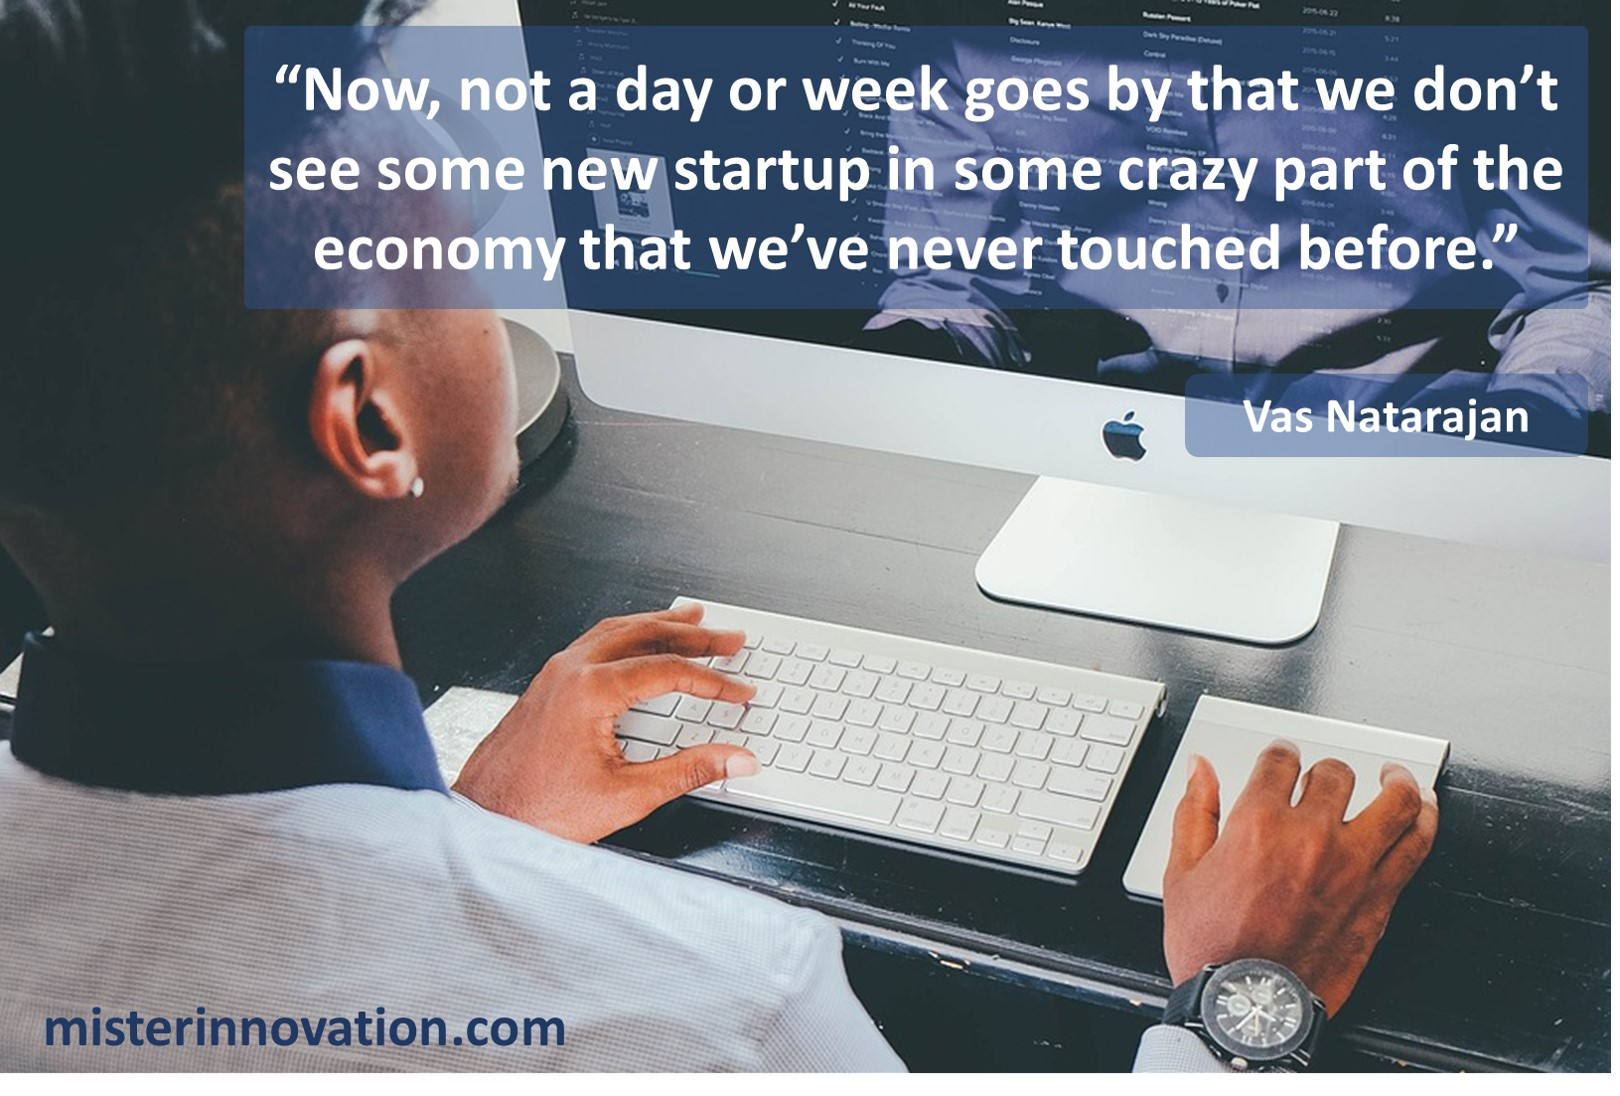 Vas Natarajan quote about startups